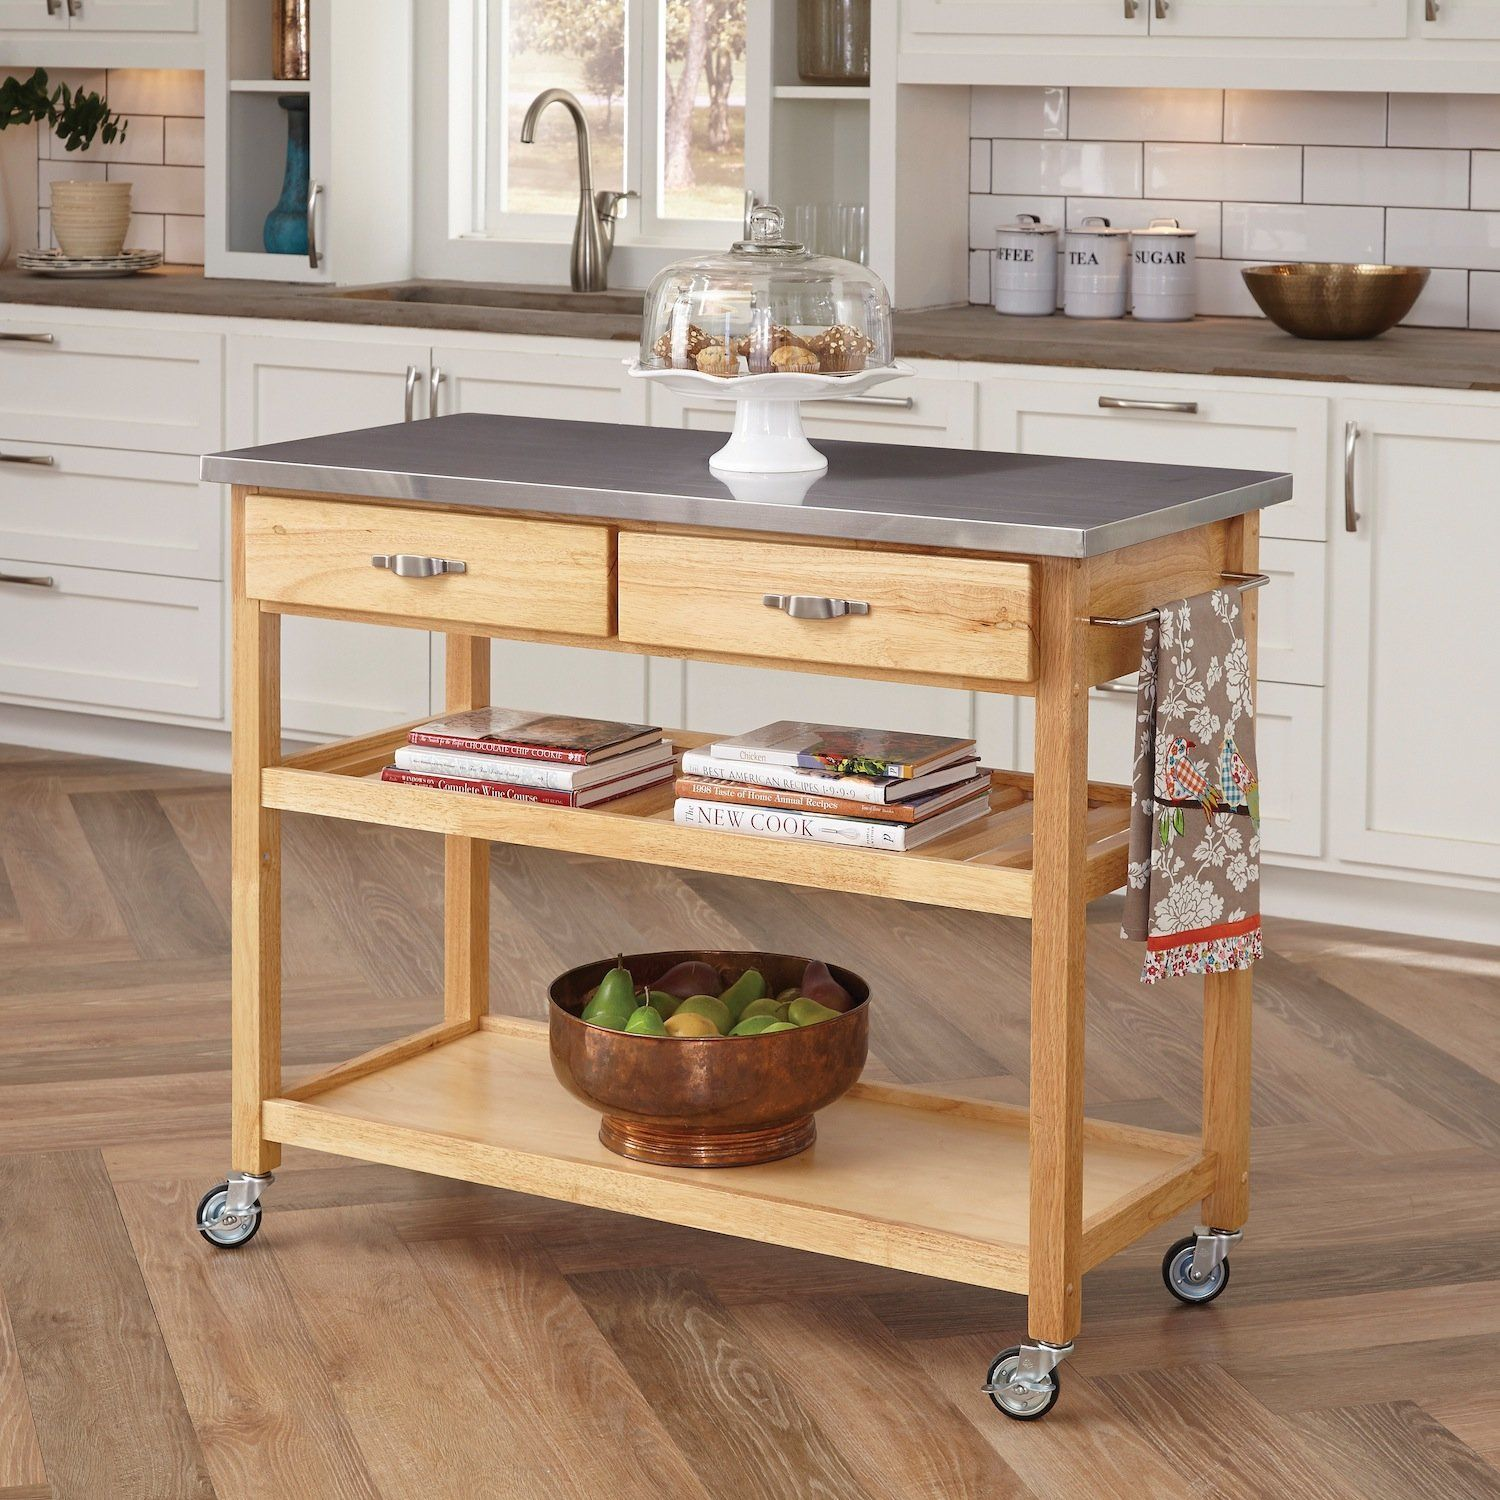 small bamboo stainlesssteel top kitchen cart | Training4Green.com ...